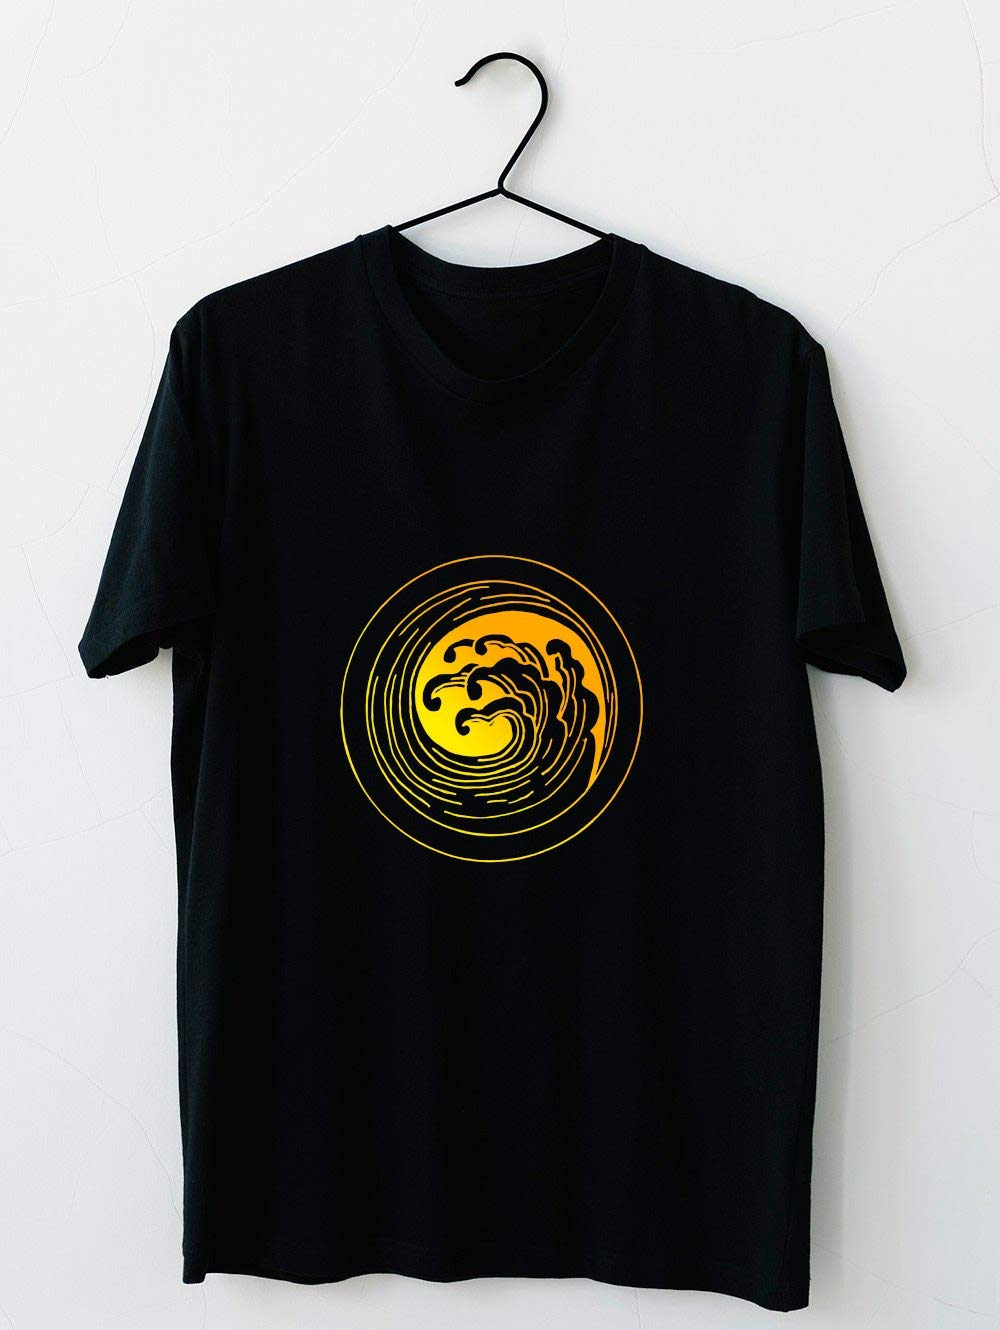 Ascension Tradition Akashayana 69 T Shirt For Unisex